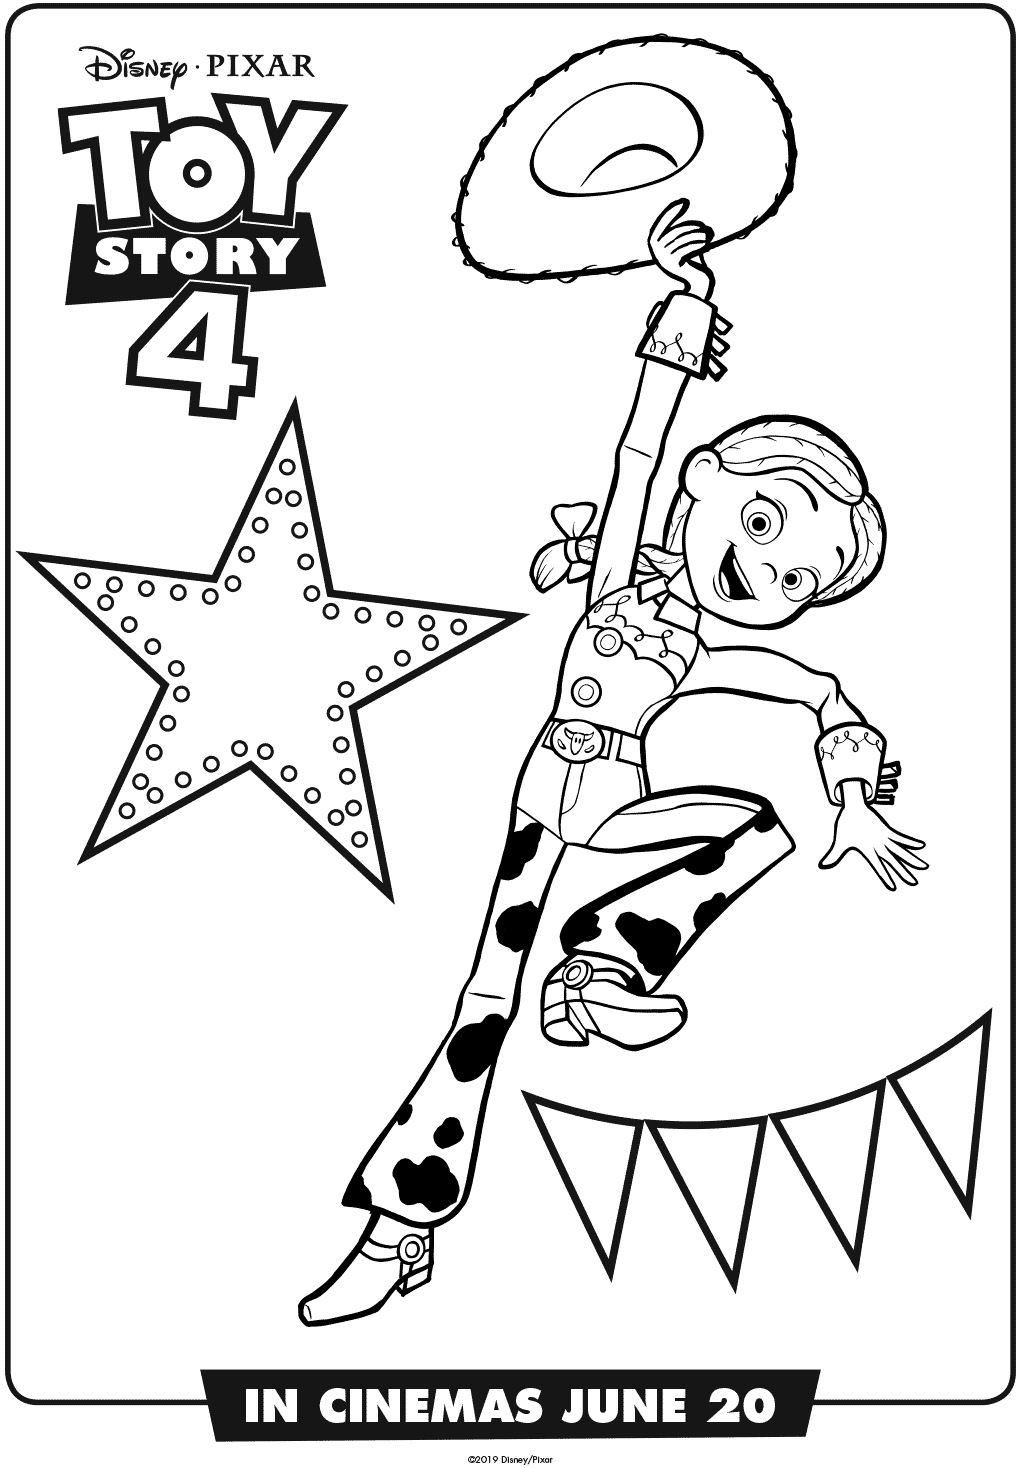 Jessie Toy Story 4 Coloring Page